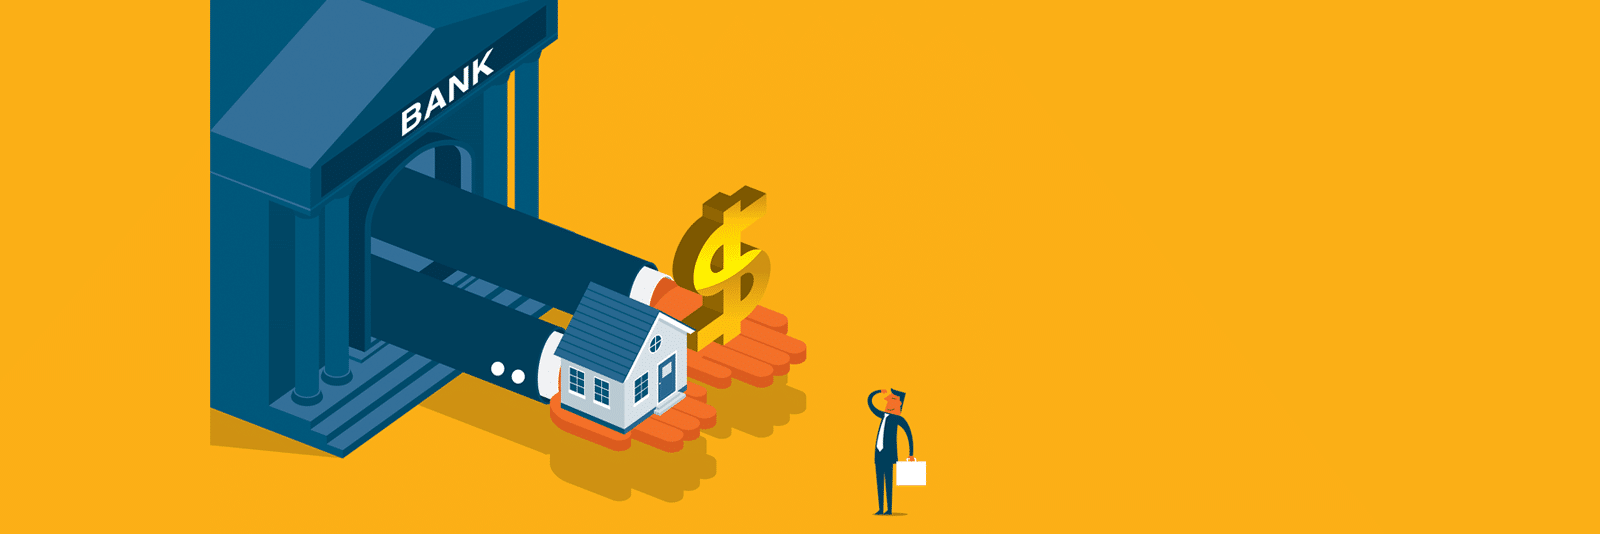 Have banks discovered the perfect tool for real estate valuations?